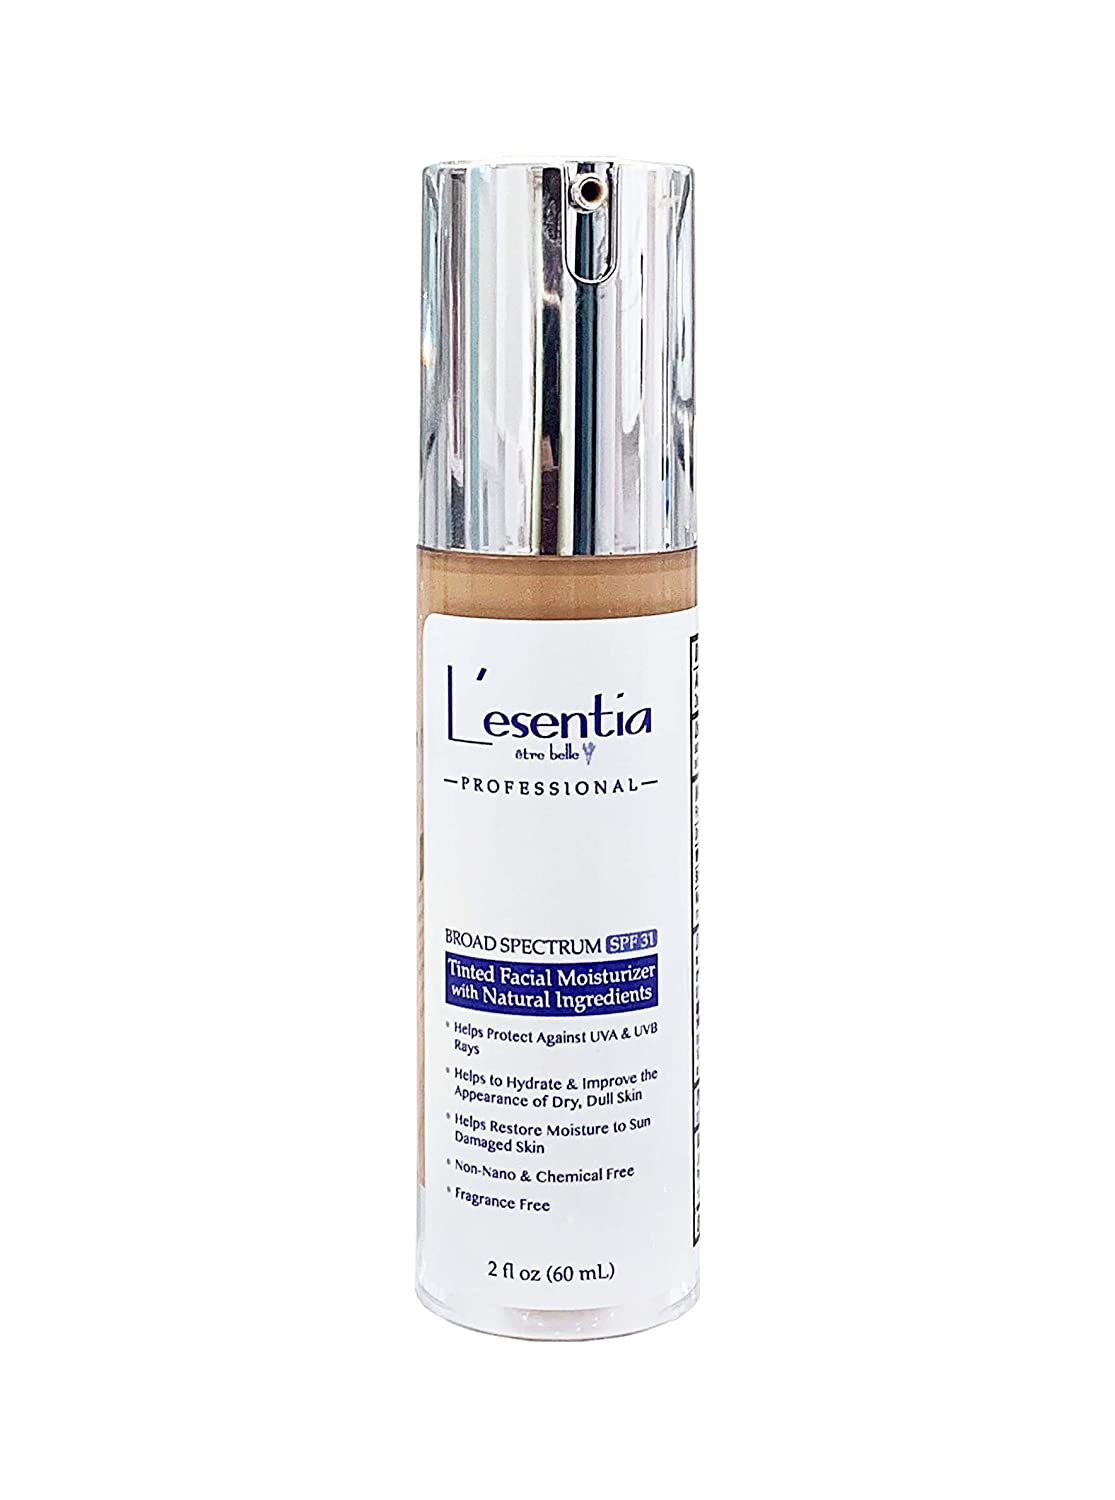 Lesentia Tinted Moisturizer with SPF 31 – Tinted Moisturizer For Face With Spf and Blemish Concealer with All Natural Ingredients like Shea Butter, Jojoba Oil, Vitamin E and Zinc (Medium – 2fl oz)